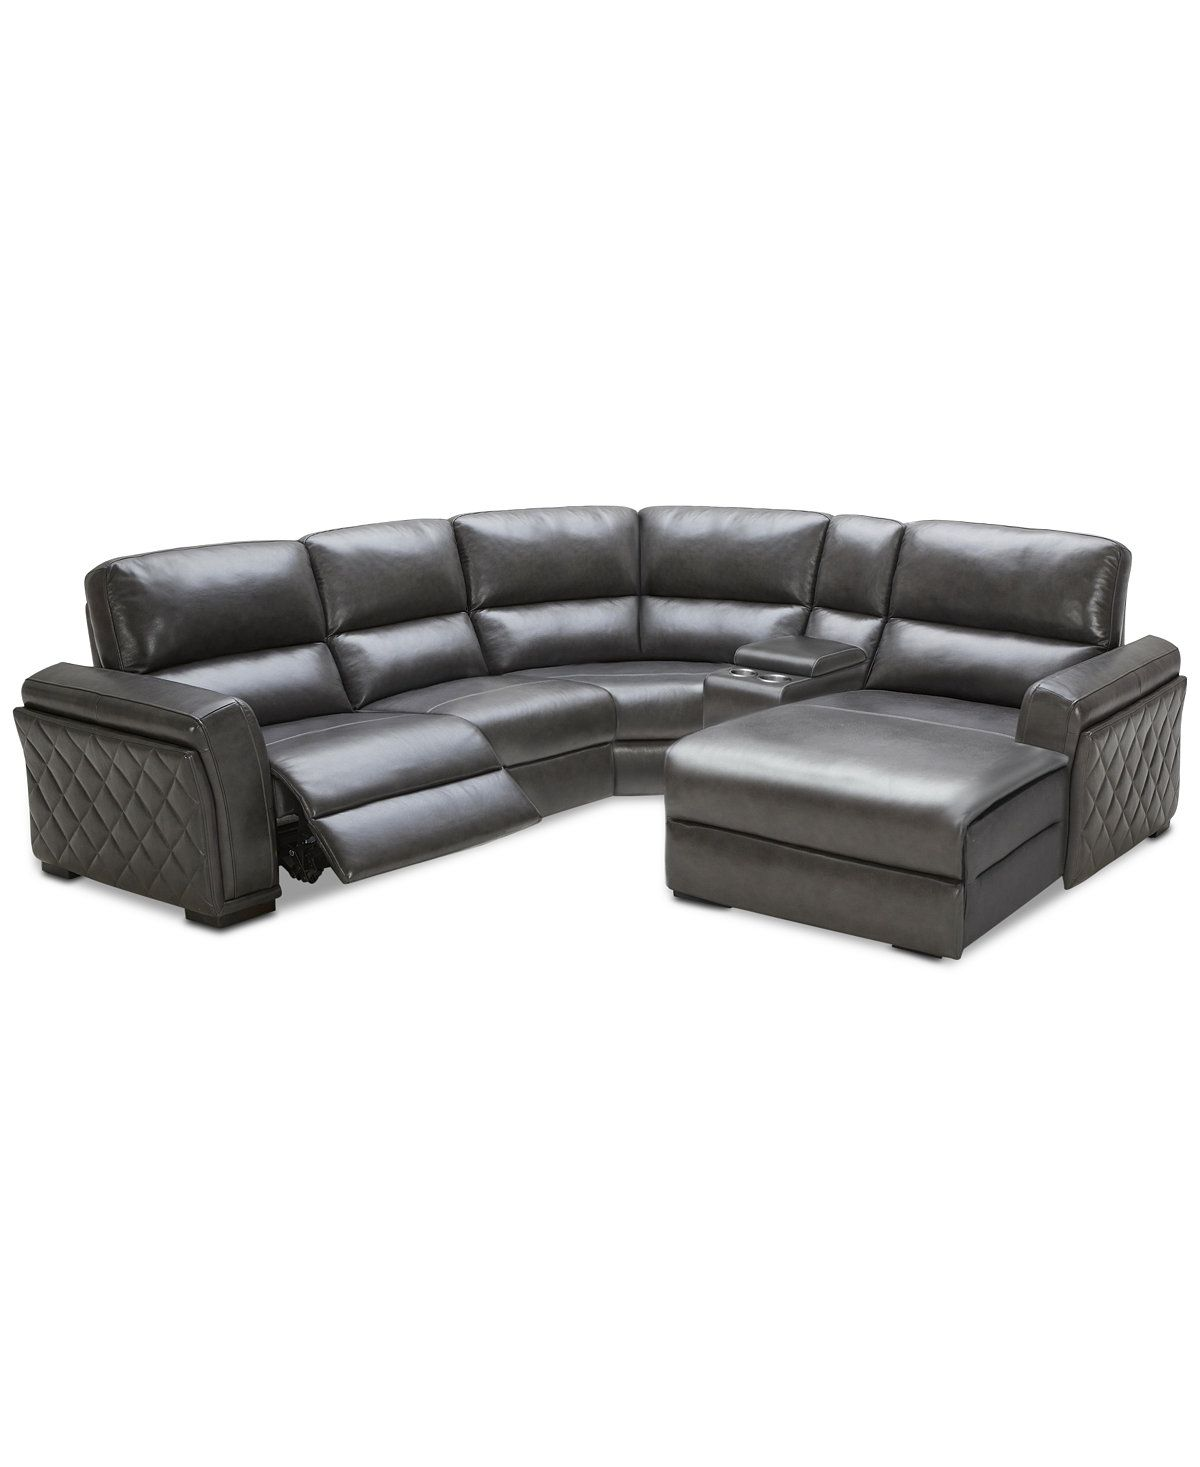 Jessi 5 Pc Leather Sectional Sofa With Chaise, Center Console And 1 Power  Recliner, Created For Macyu0027s